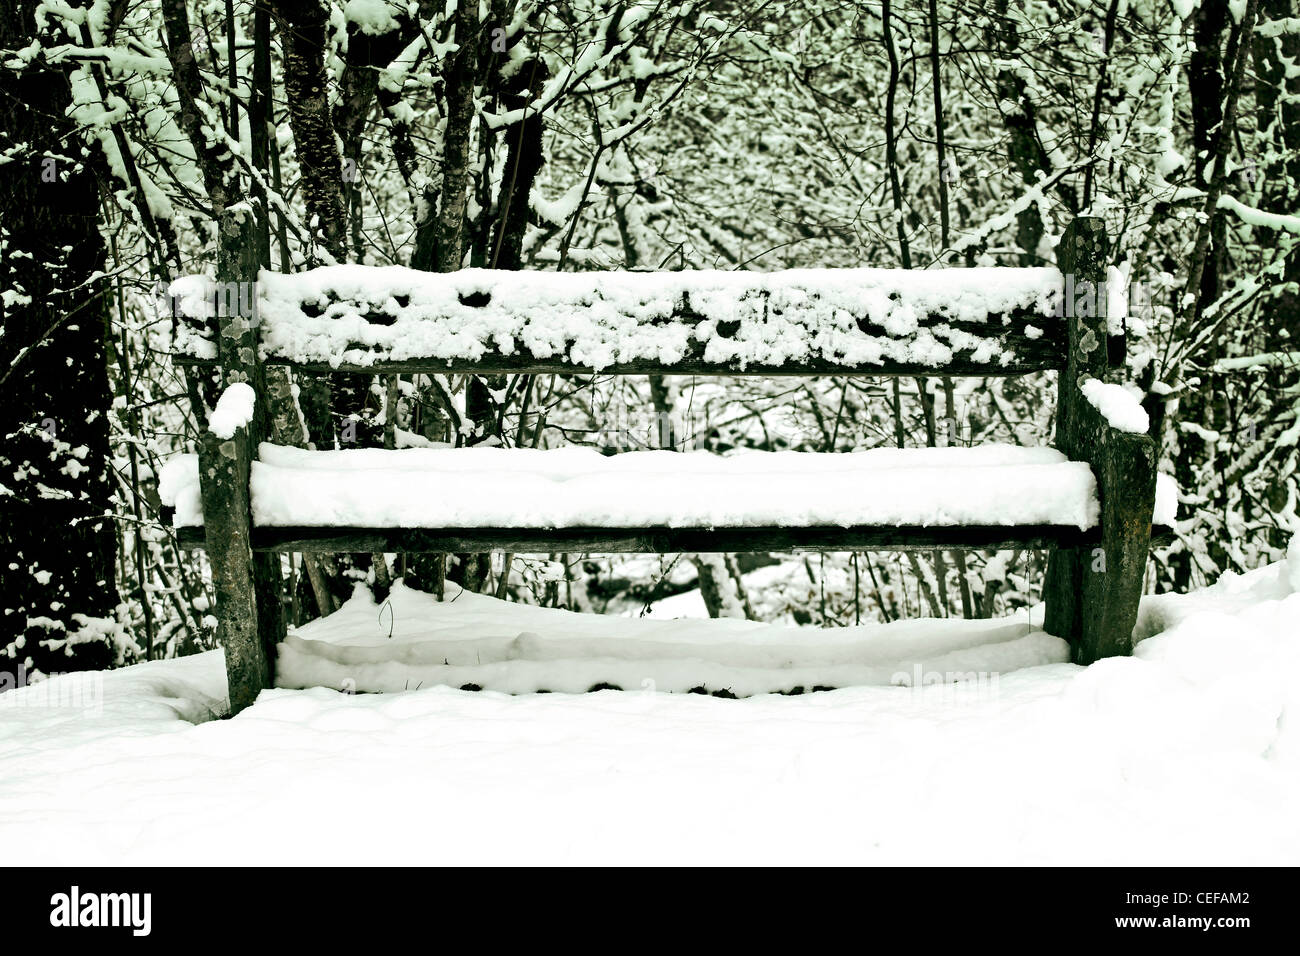 stone bench with snow - Stock Image